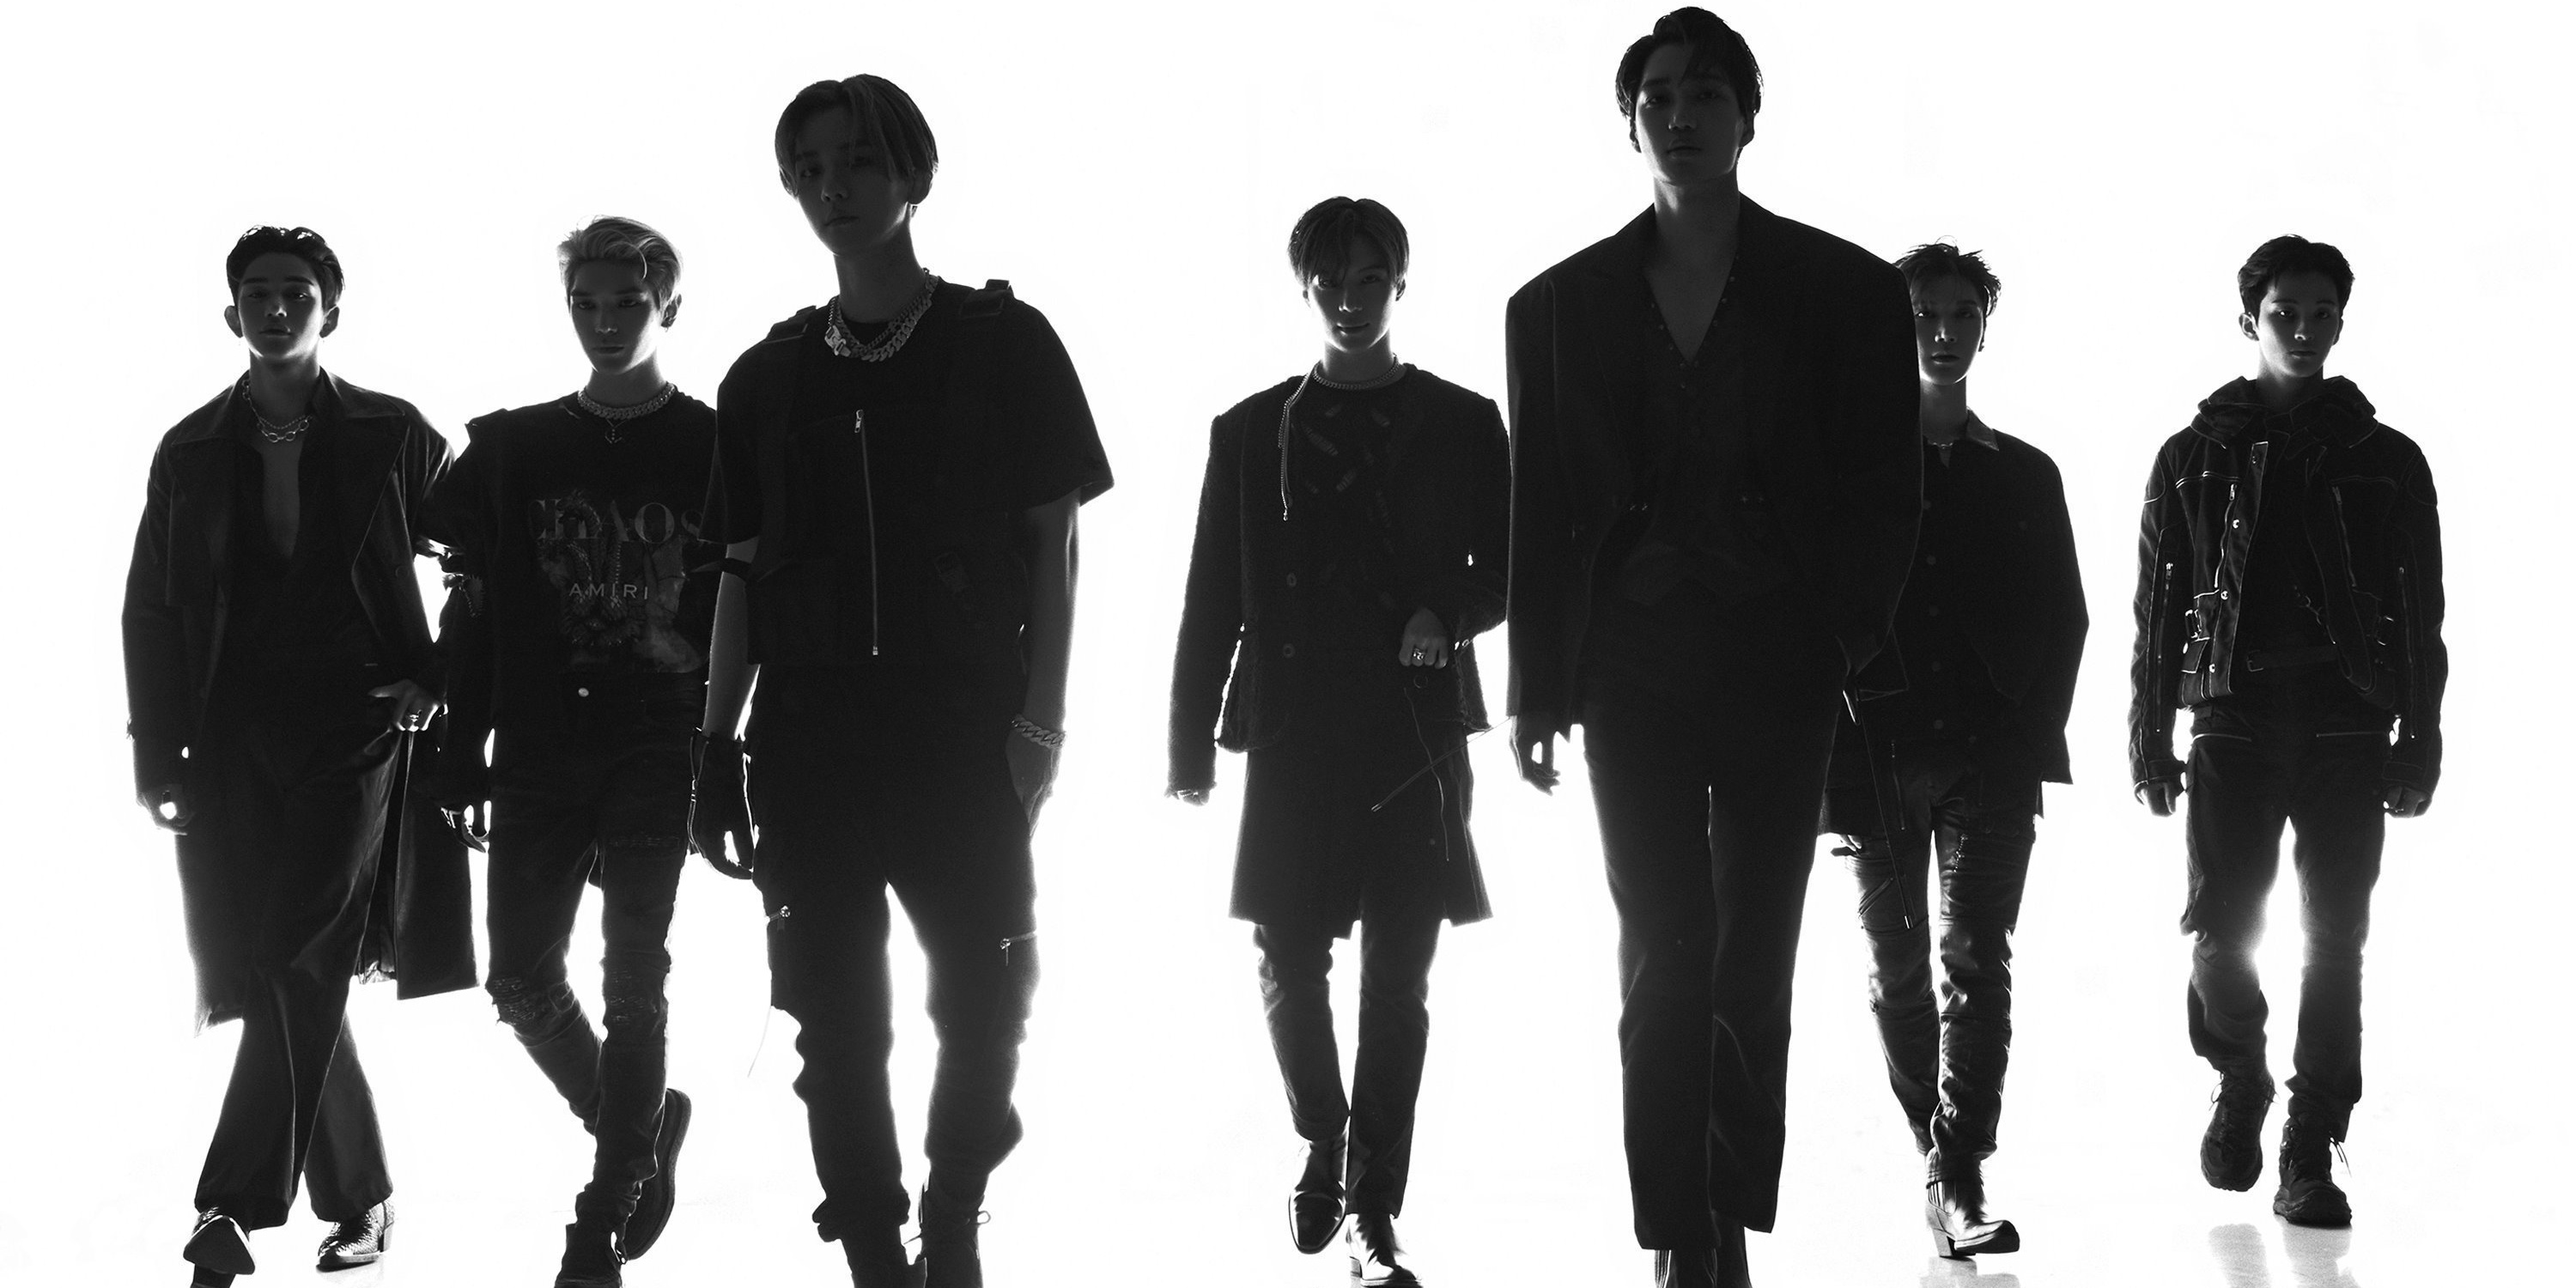 SuperM, K-pop's newest super group, announce details of upcoming debut EP